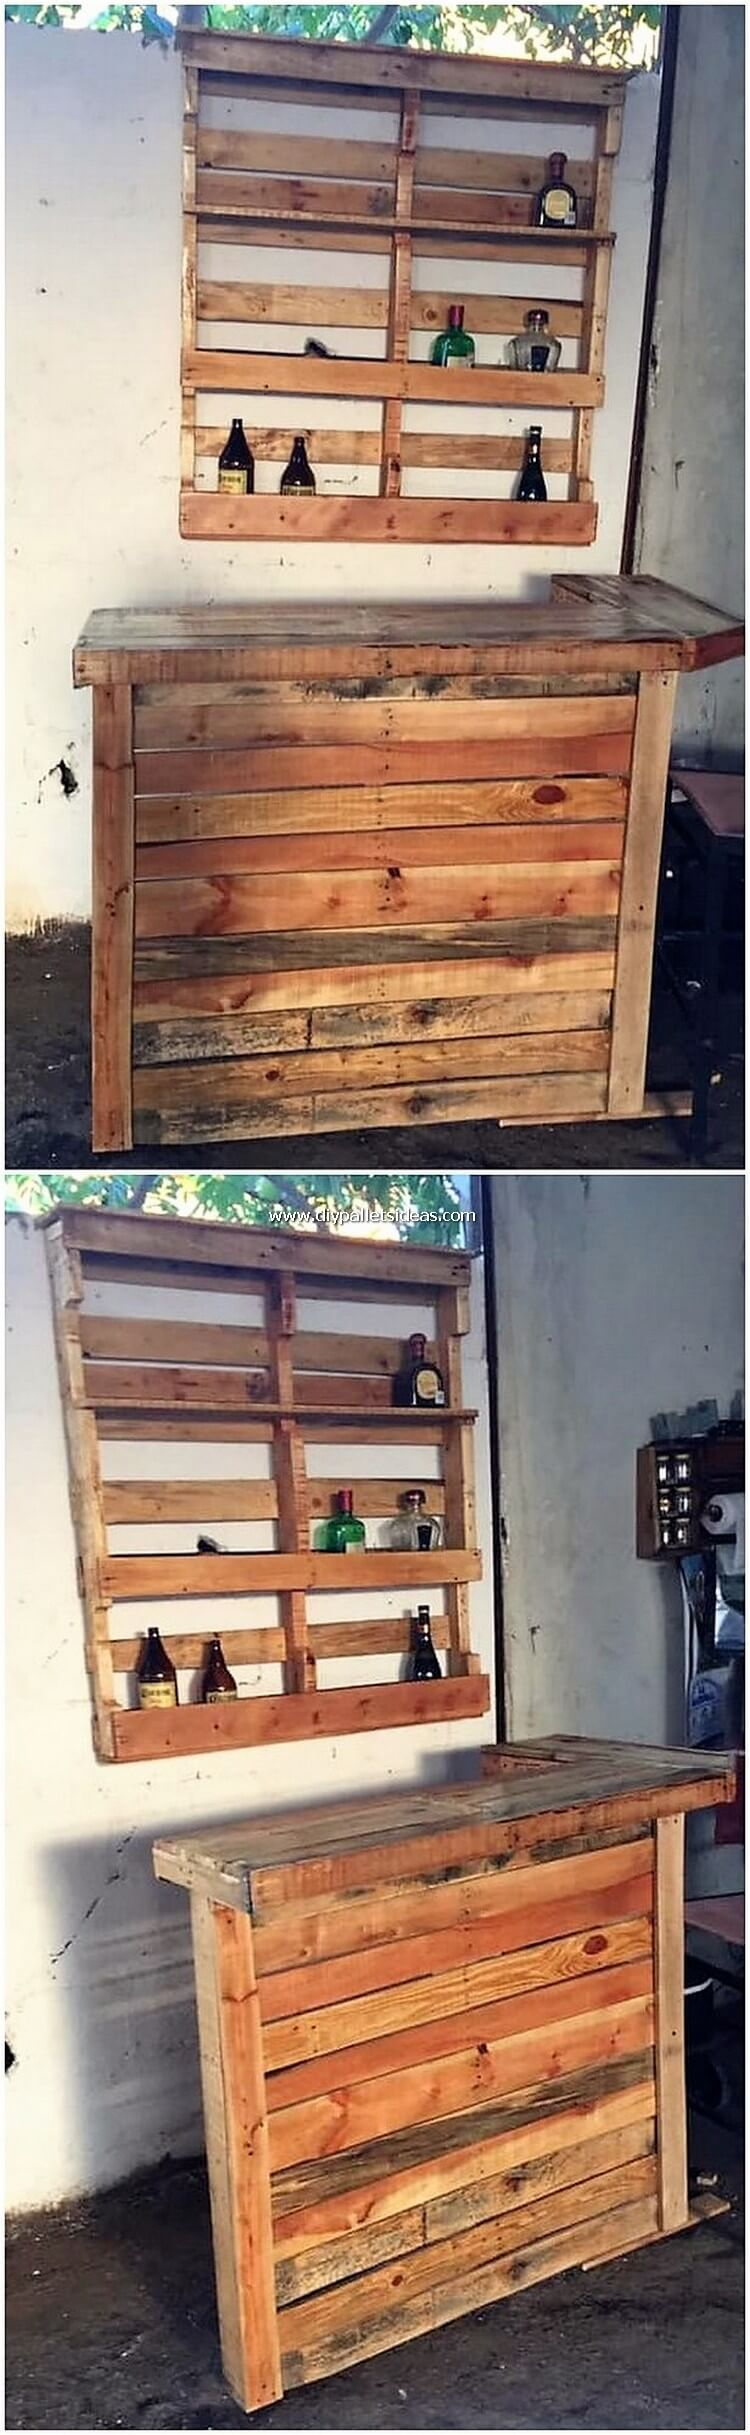 Pallet Bar Counter Table and Wine Rack